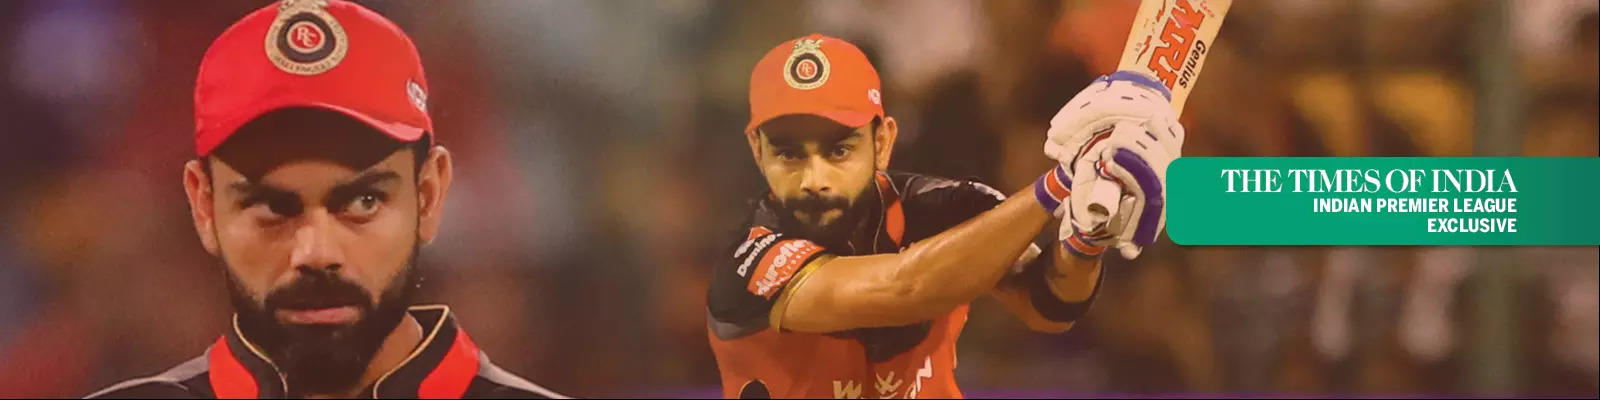 Player with most match appearances in IPL History